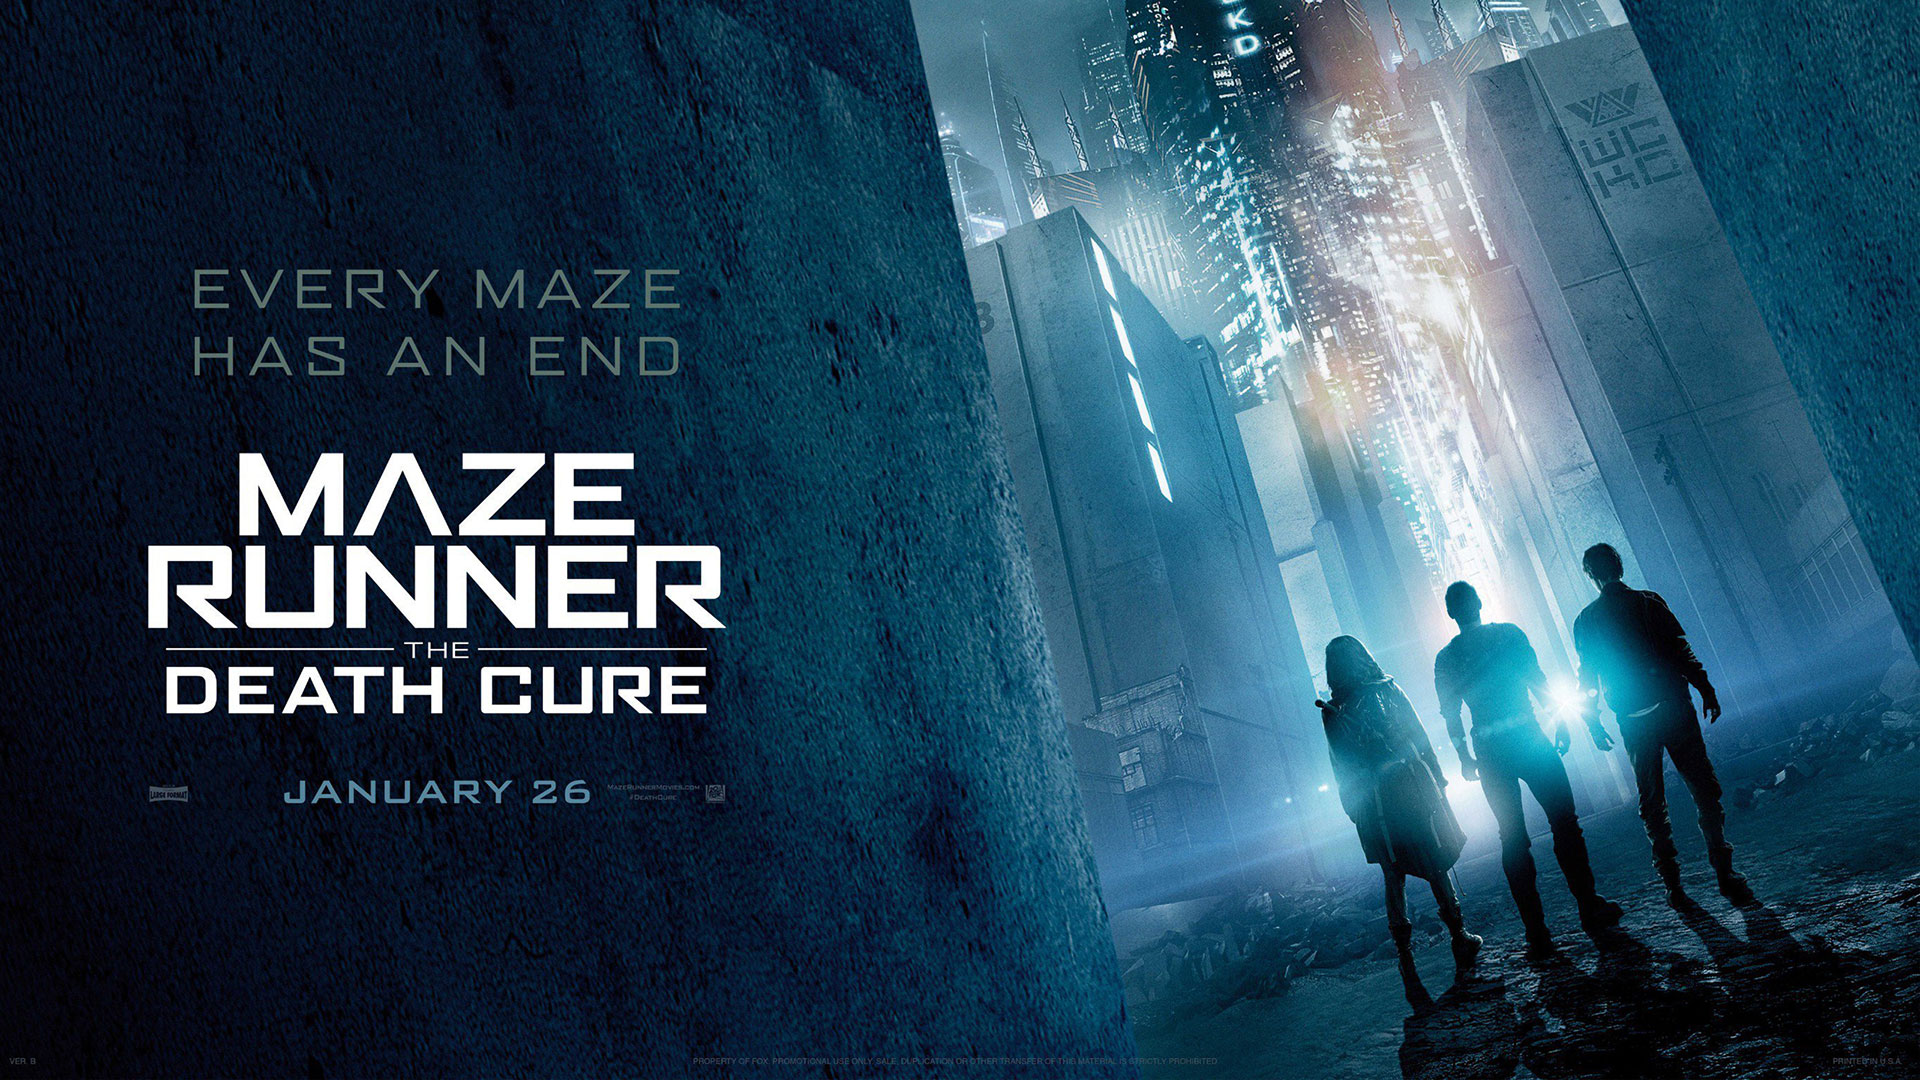 'Maze Runner: The Death Cure' - landscape artwork